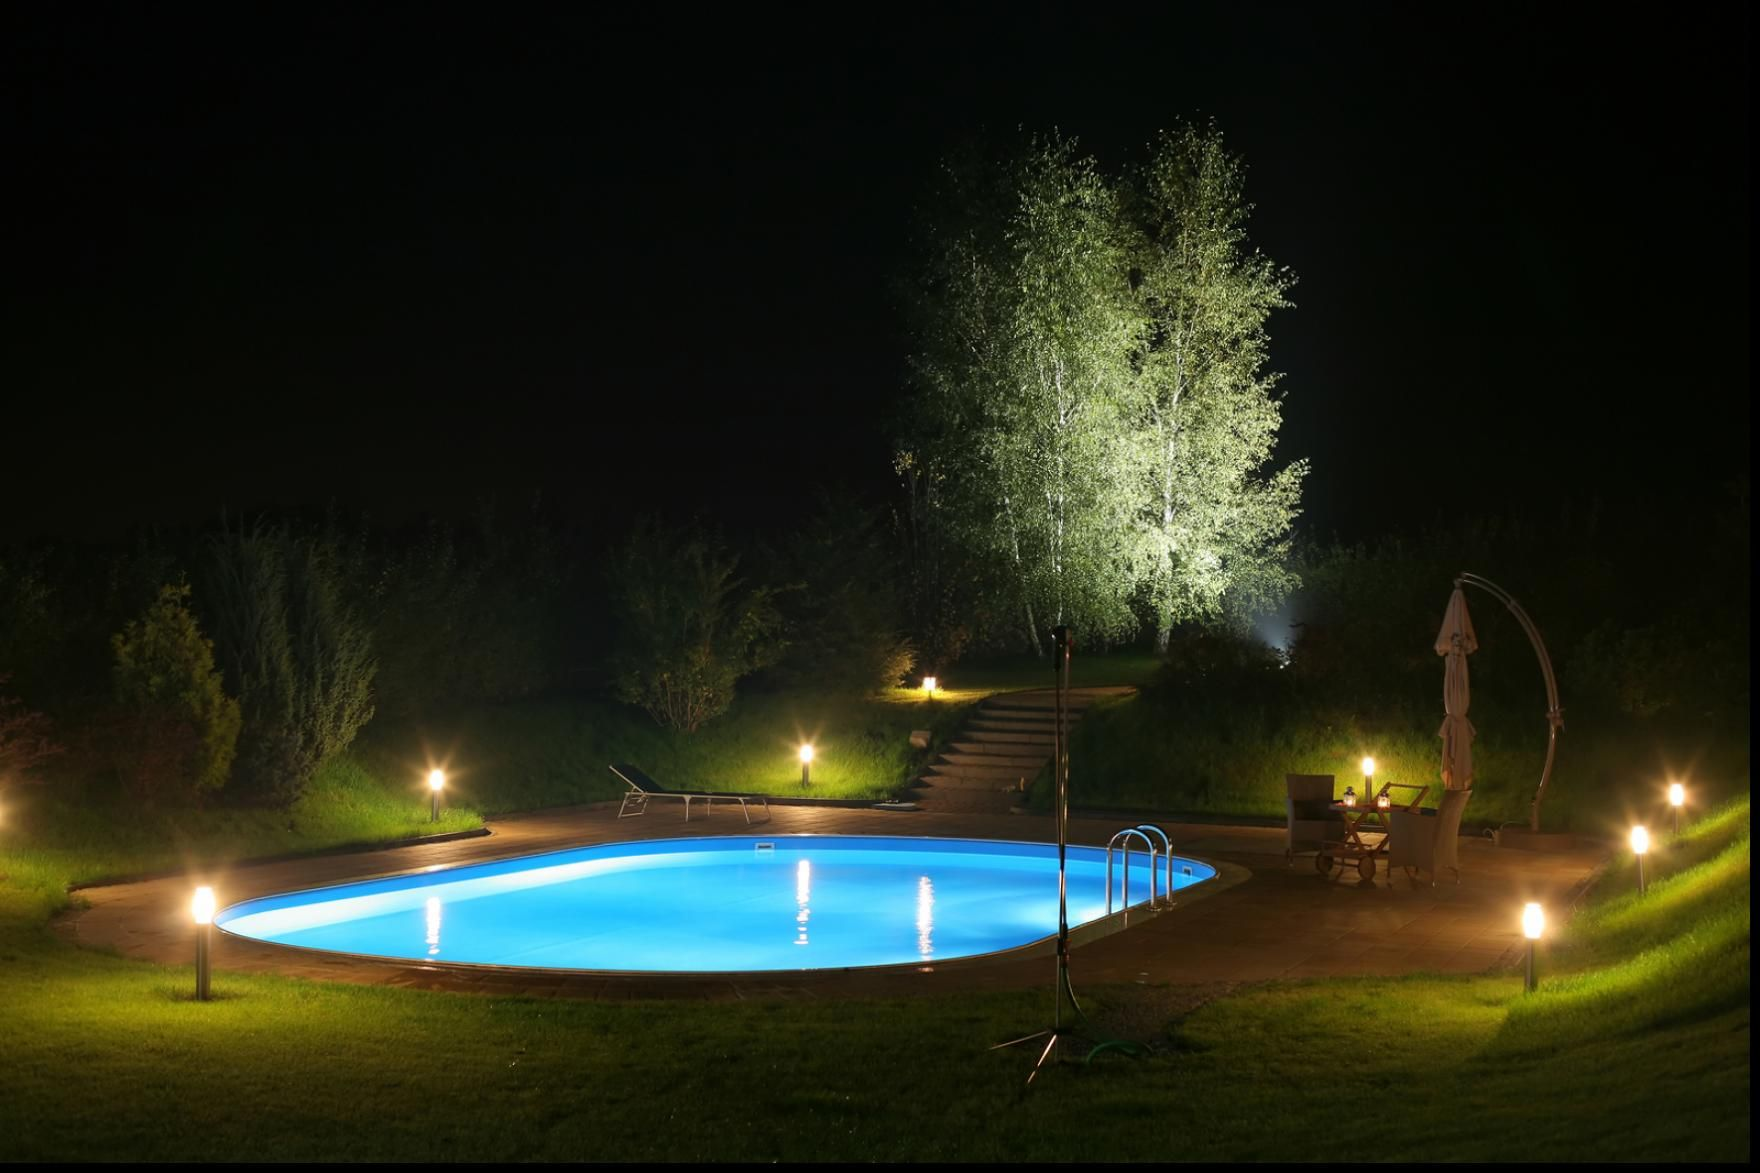 Outdoor Patio Lights Around Pool Superb Ideas Inspiring Ideas Within Solar Patio Lights An Inexpensive Outdoor Pool Decor Outdoor Lighting Design Pool Decor